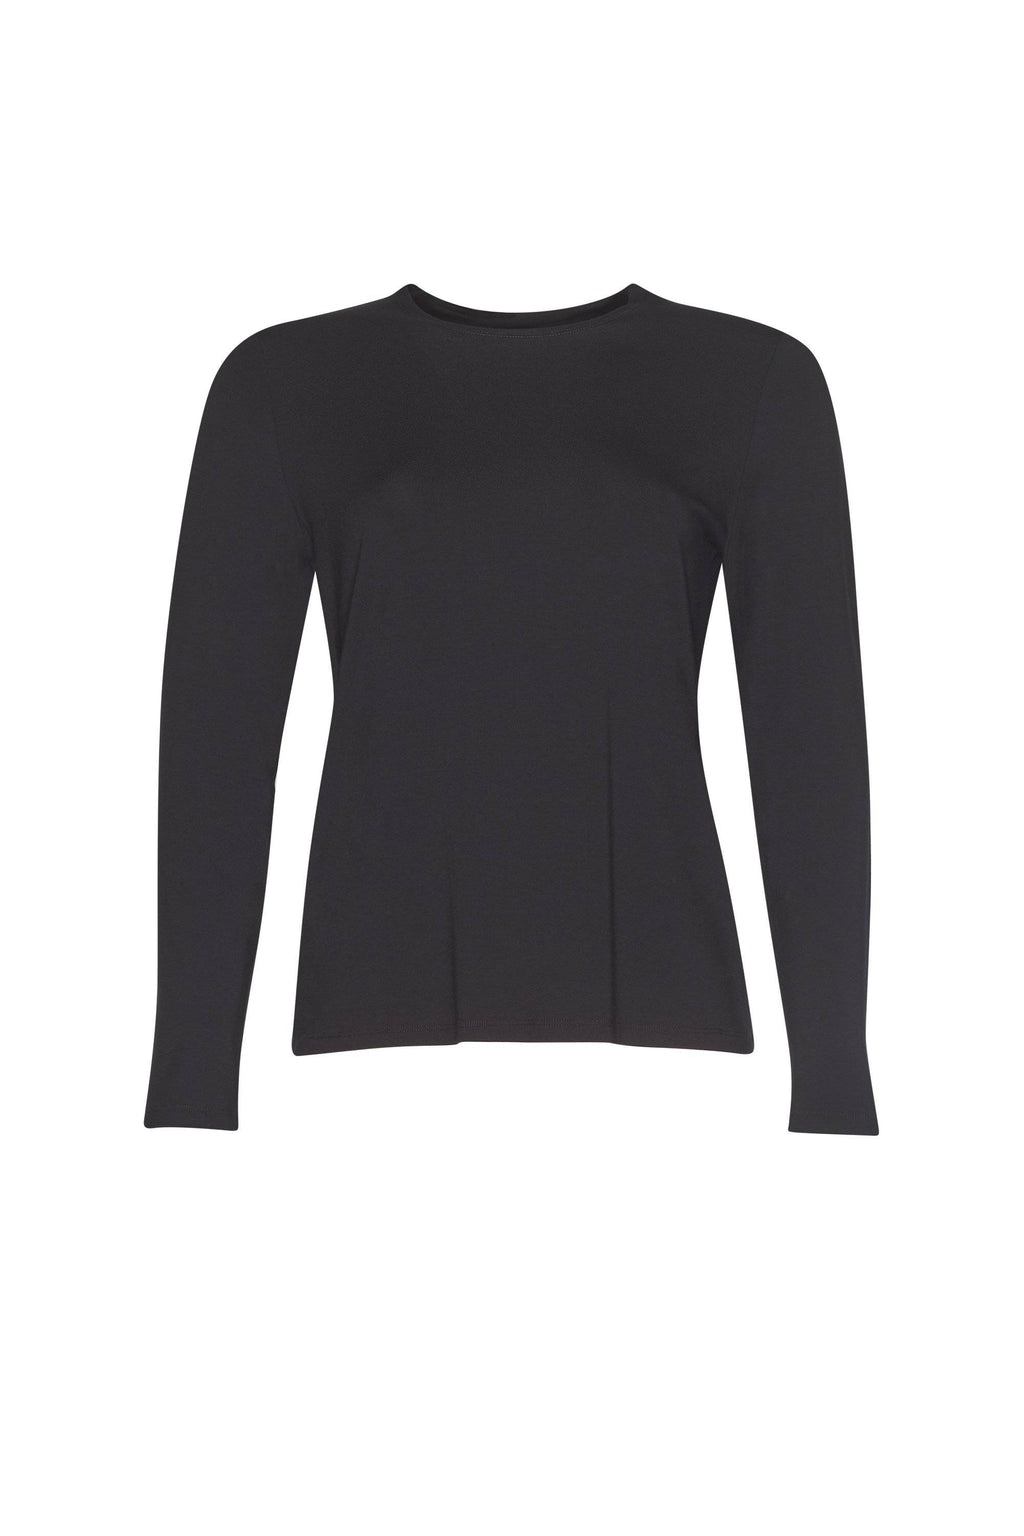 PAULA RYAN ESSENTIALS Easy Fit Long Sleeve Crew Neck Top - MicroModal - Magpie Style